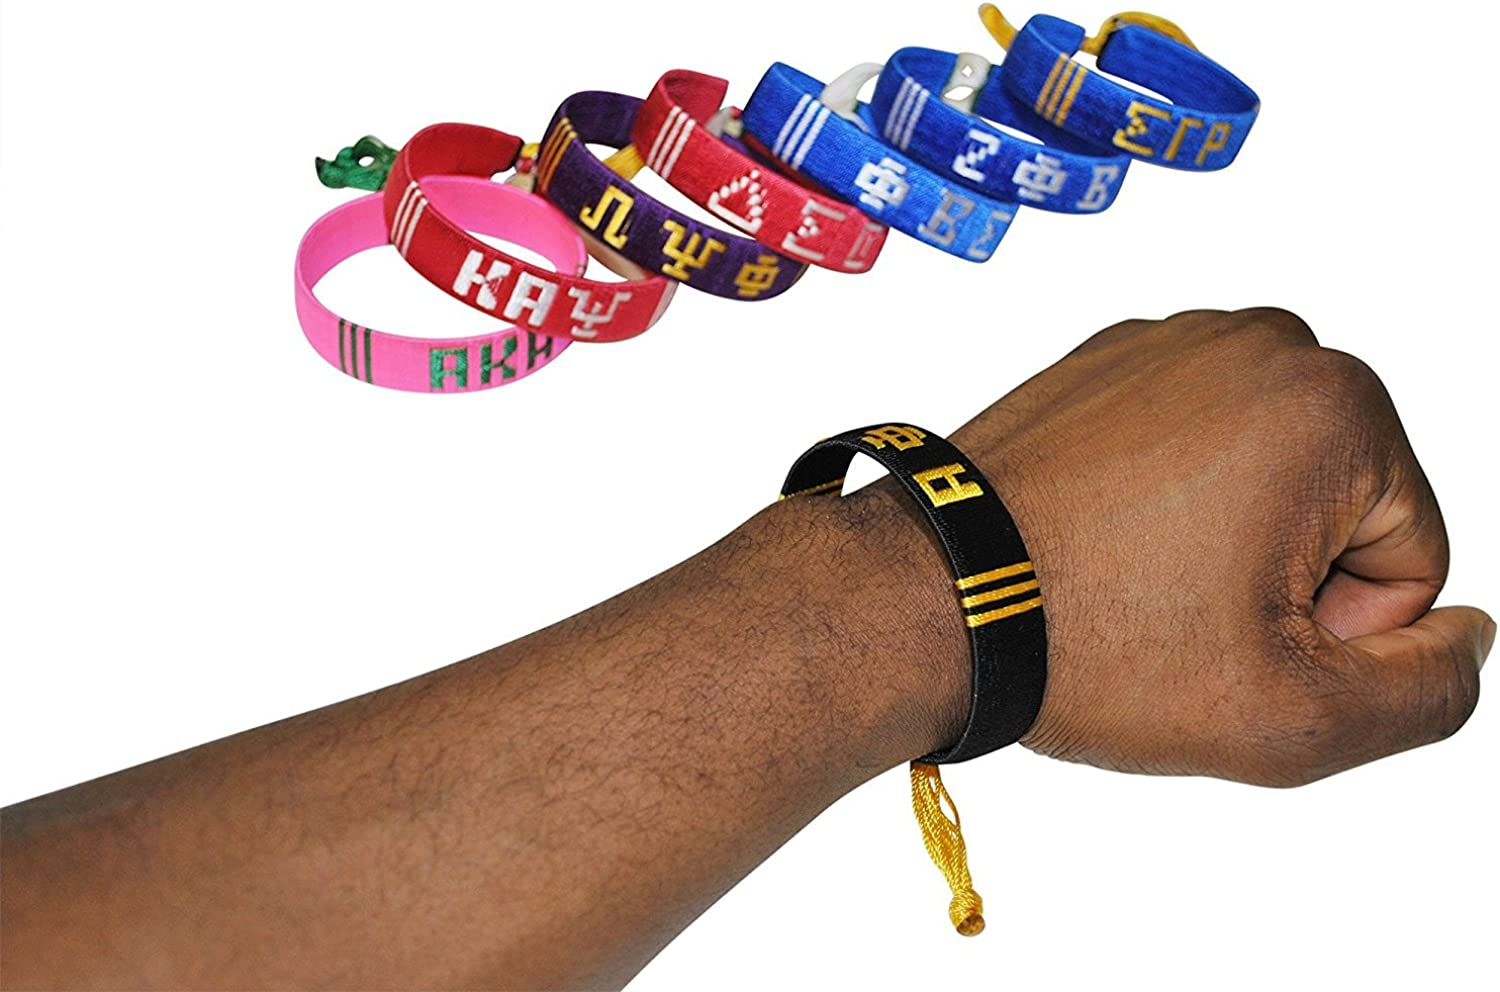 Greek Letter Bracelets (Kappa Alpha Psi)